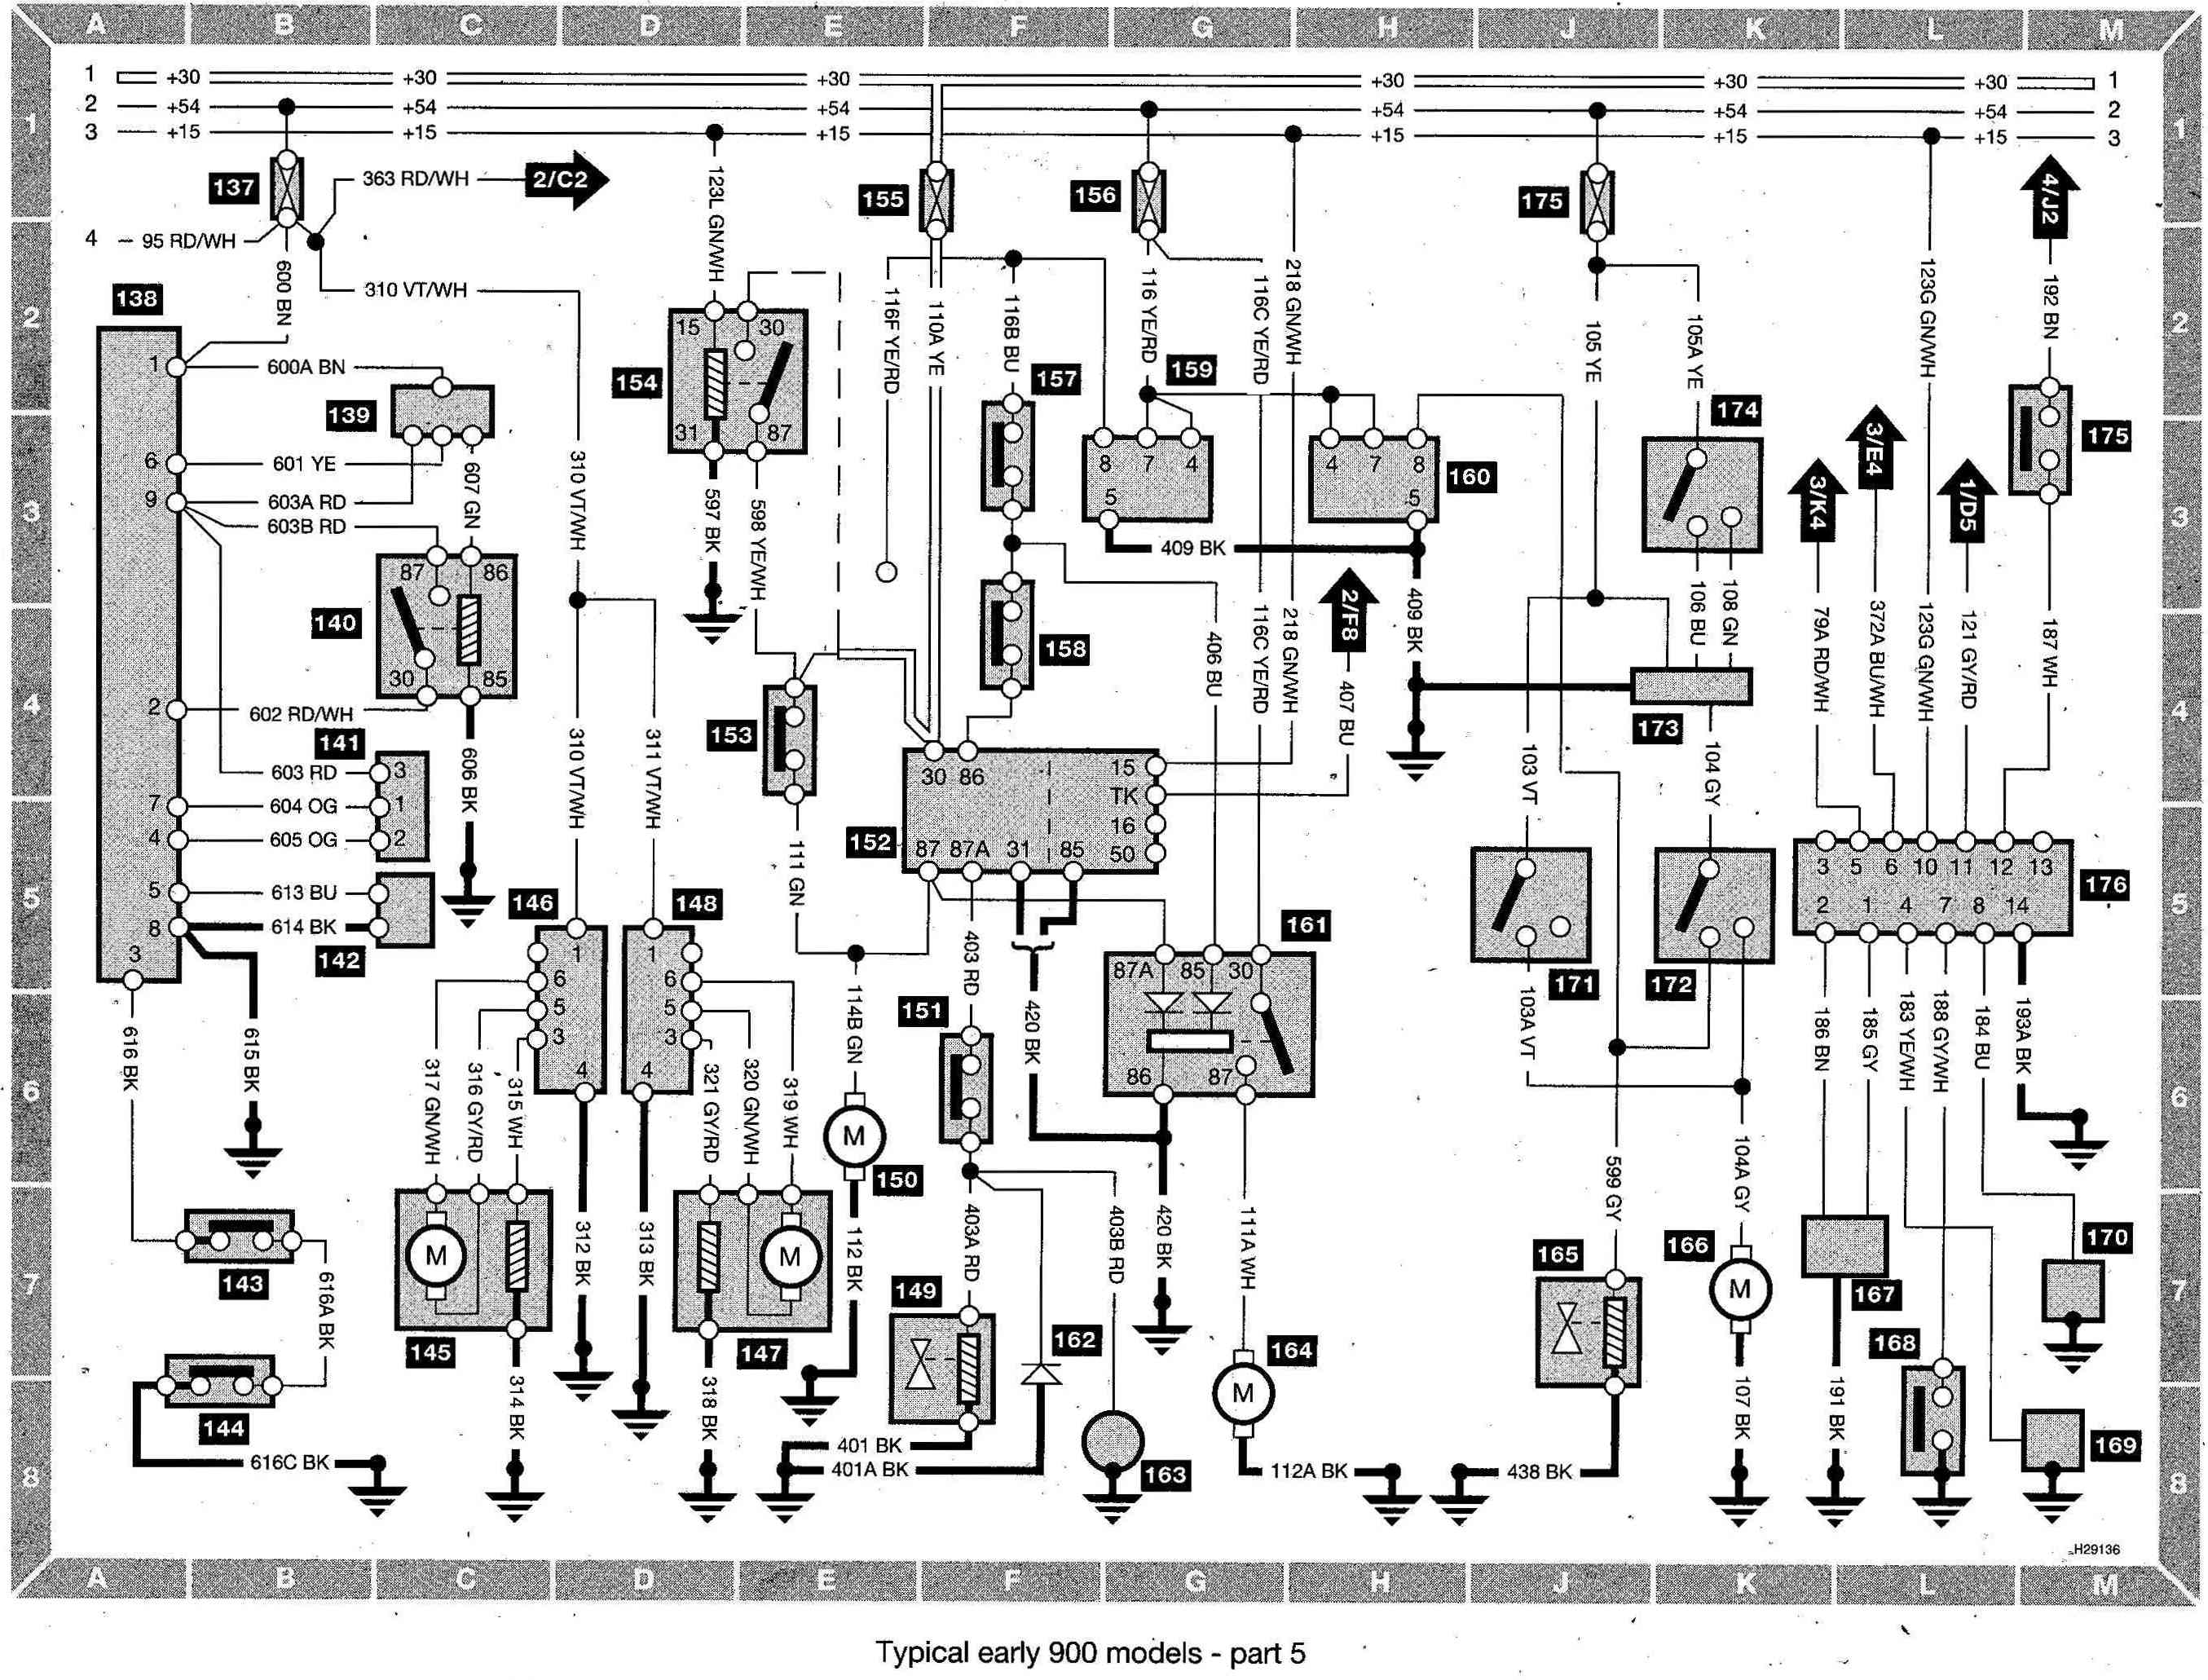 saab wiring diagrams explore wiring diagram on the net • saab wiring harness saab engine image for user saab 9 3 wiring diagram saab 9 3 wiring diagram